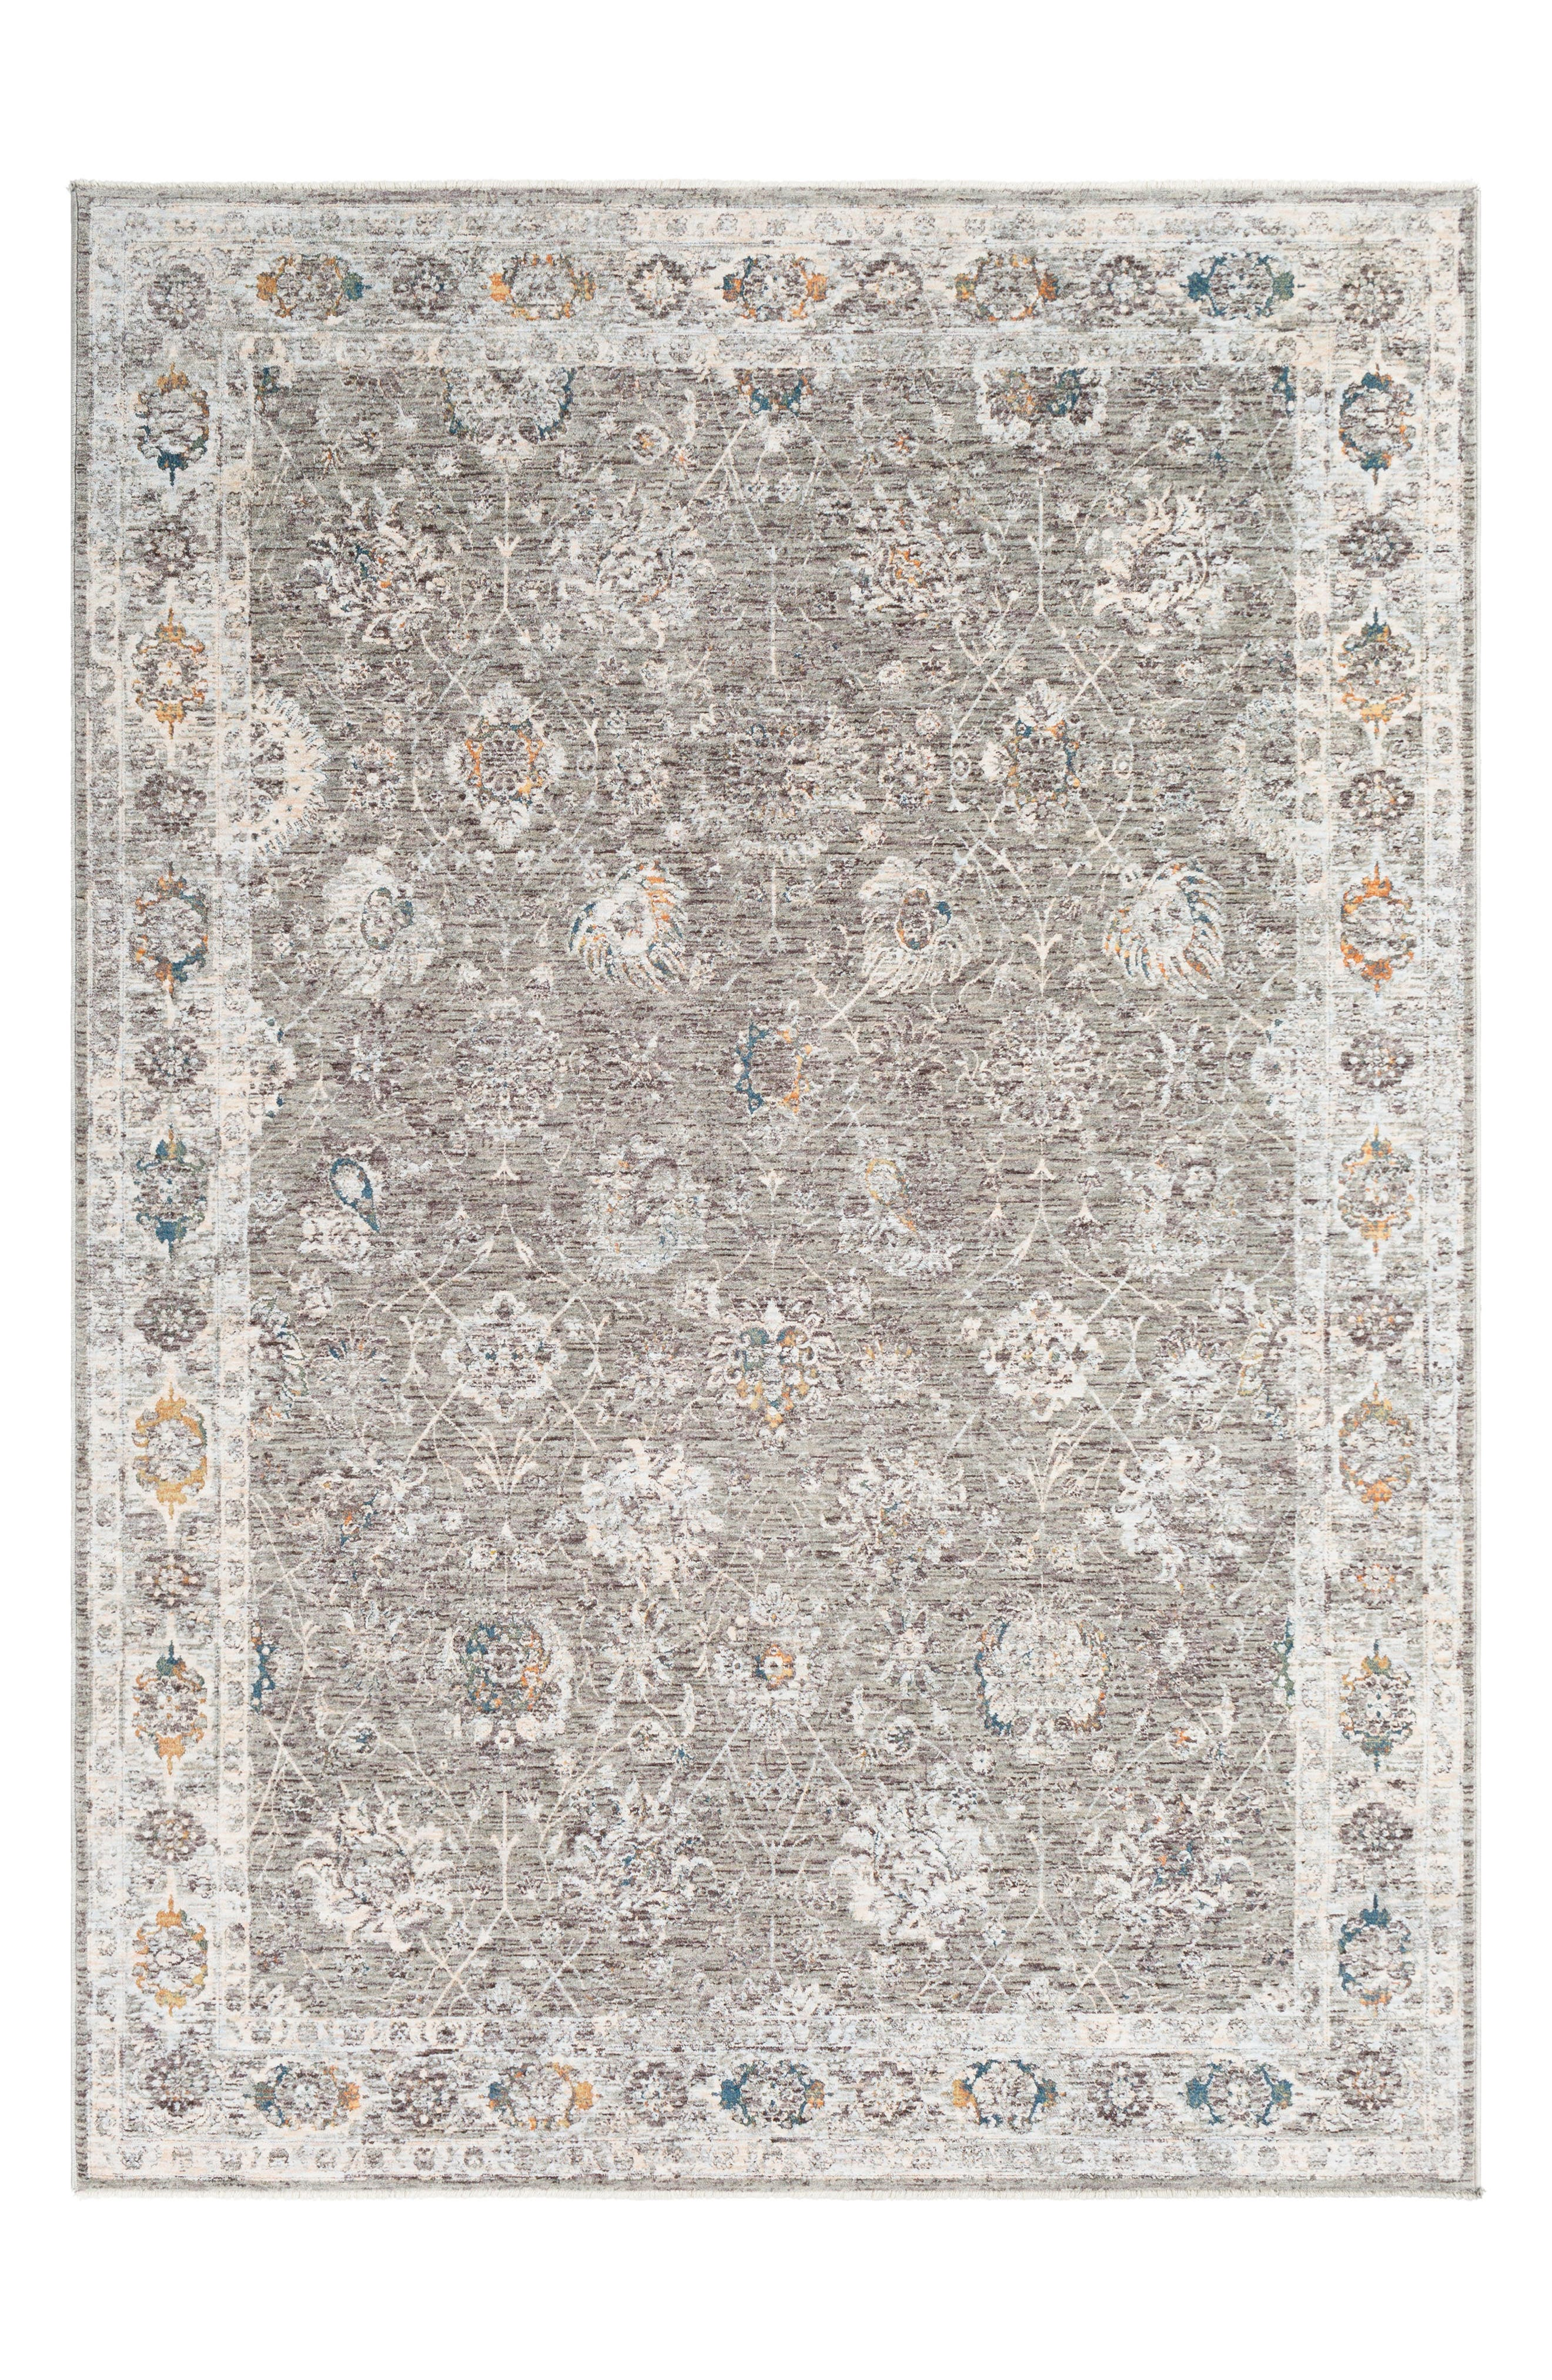 Presidential Floral Border Area Rug,                             Main thumbnail 1, color,                             LIME